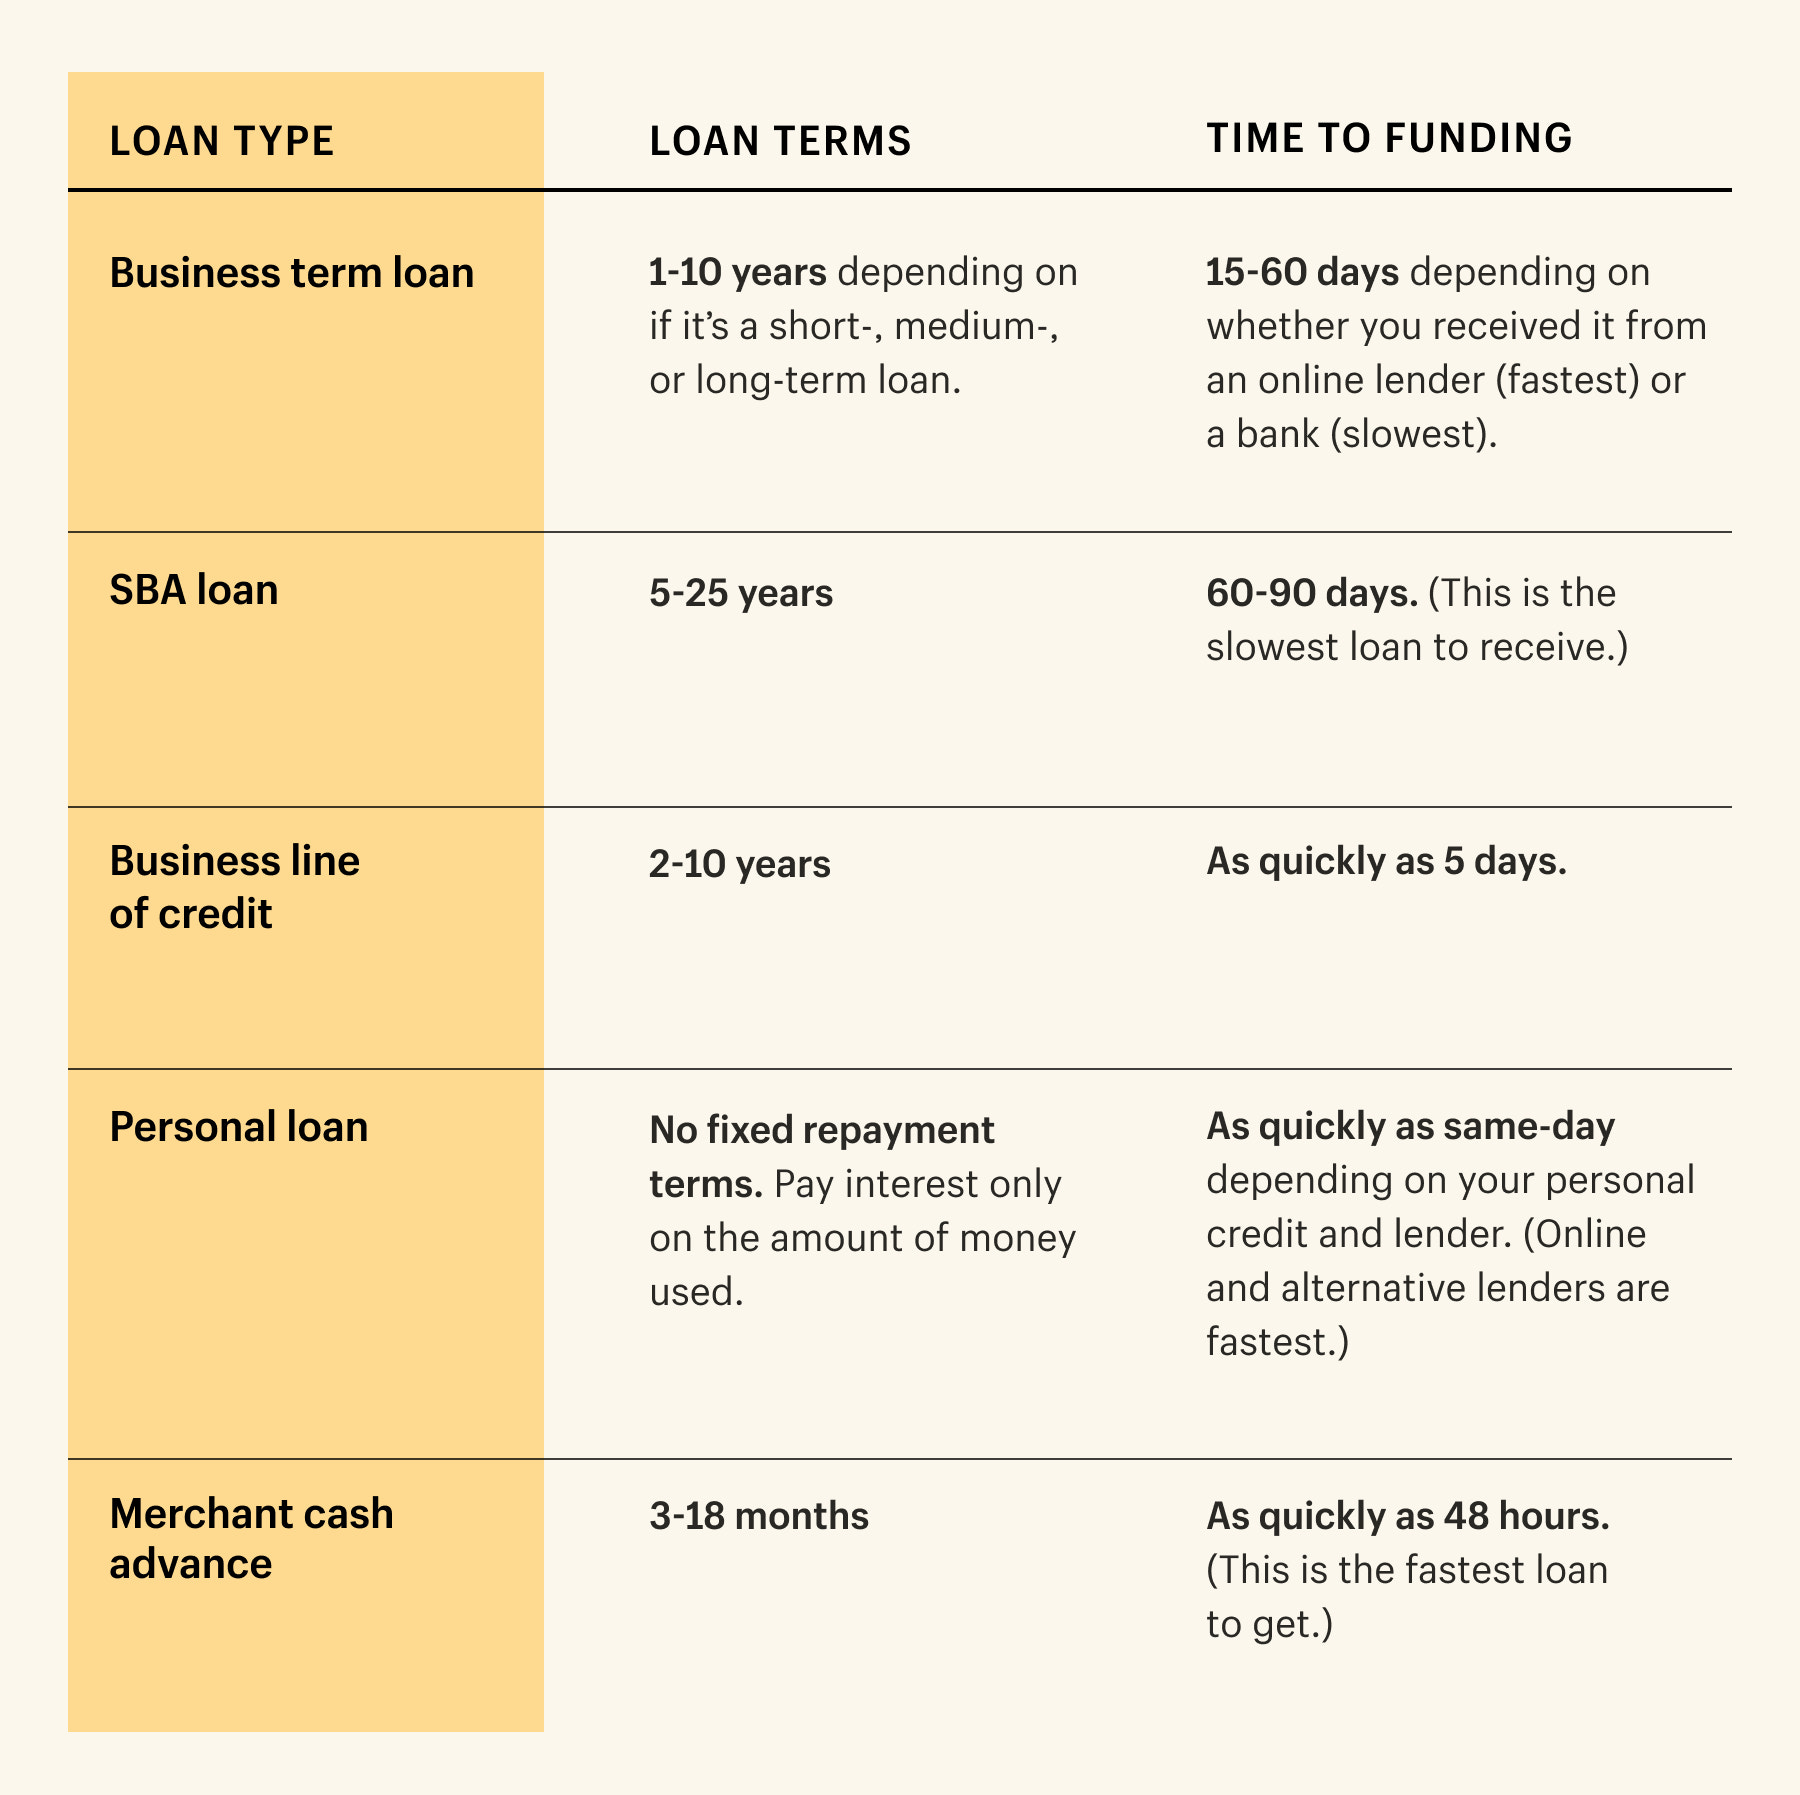 summary chart of loan types and payment terms